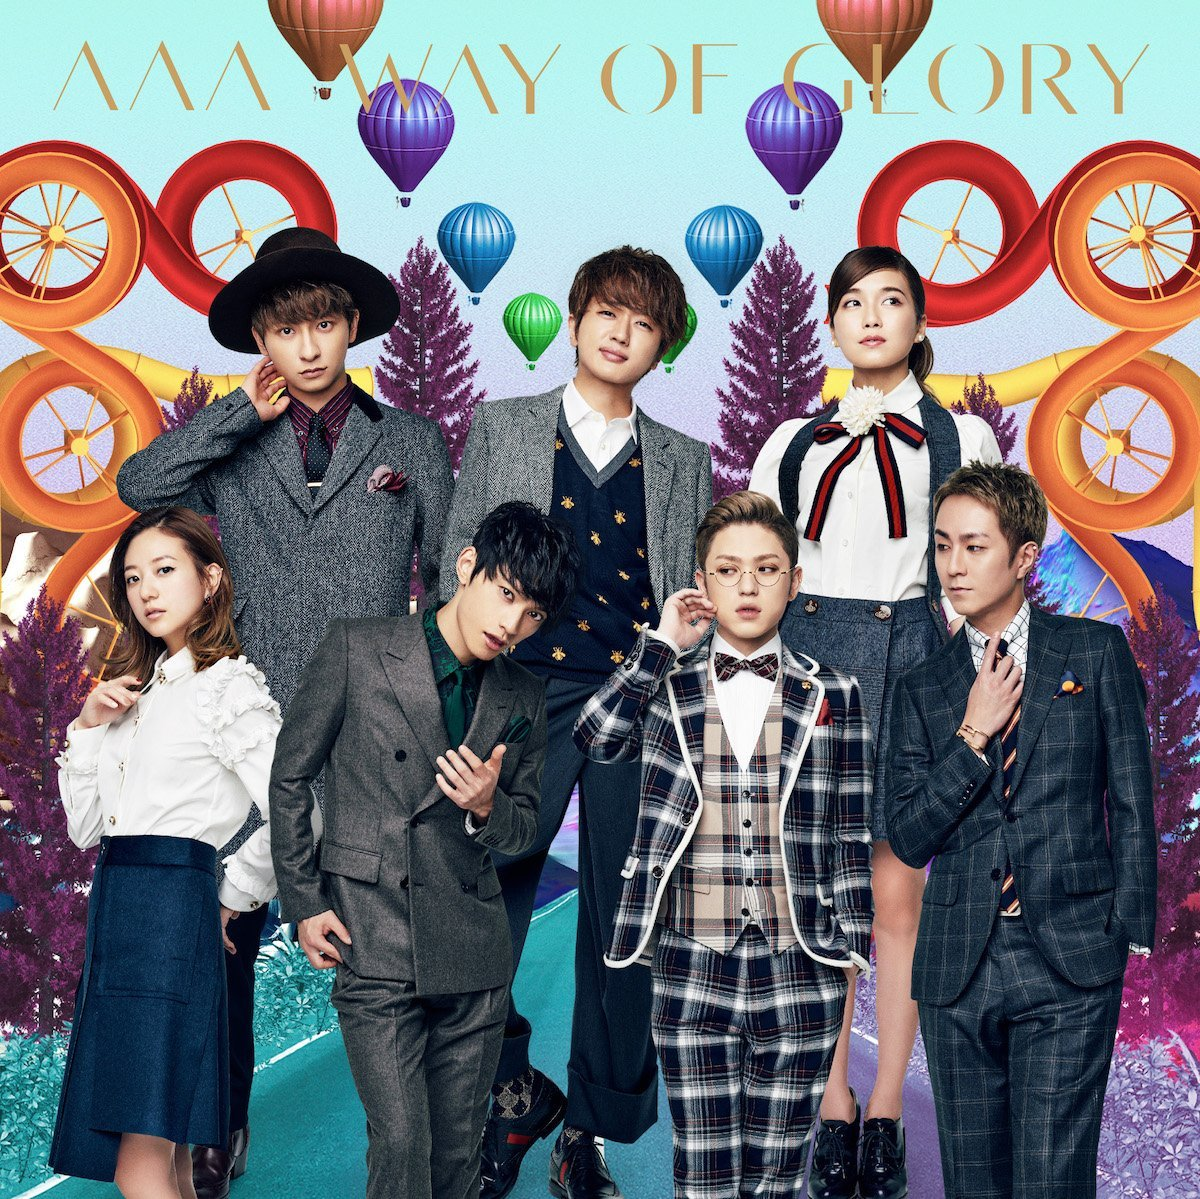 20170221.04.41 AAA - Way of Glory (DVD) (JPOP.ru) cover 1.jpg